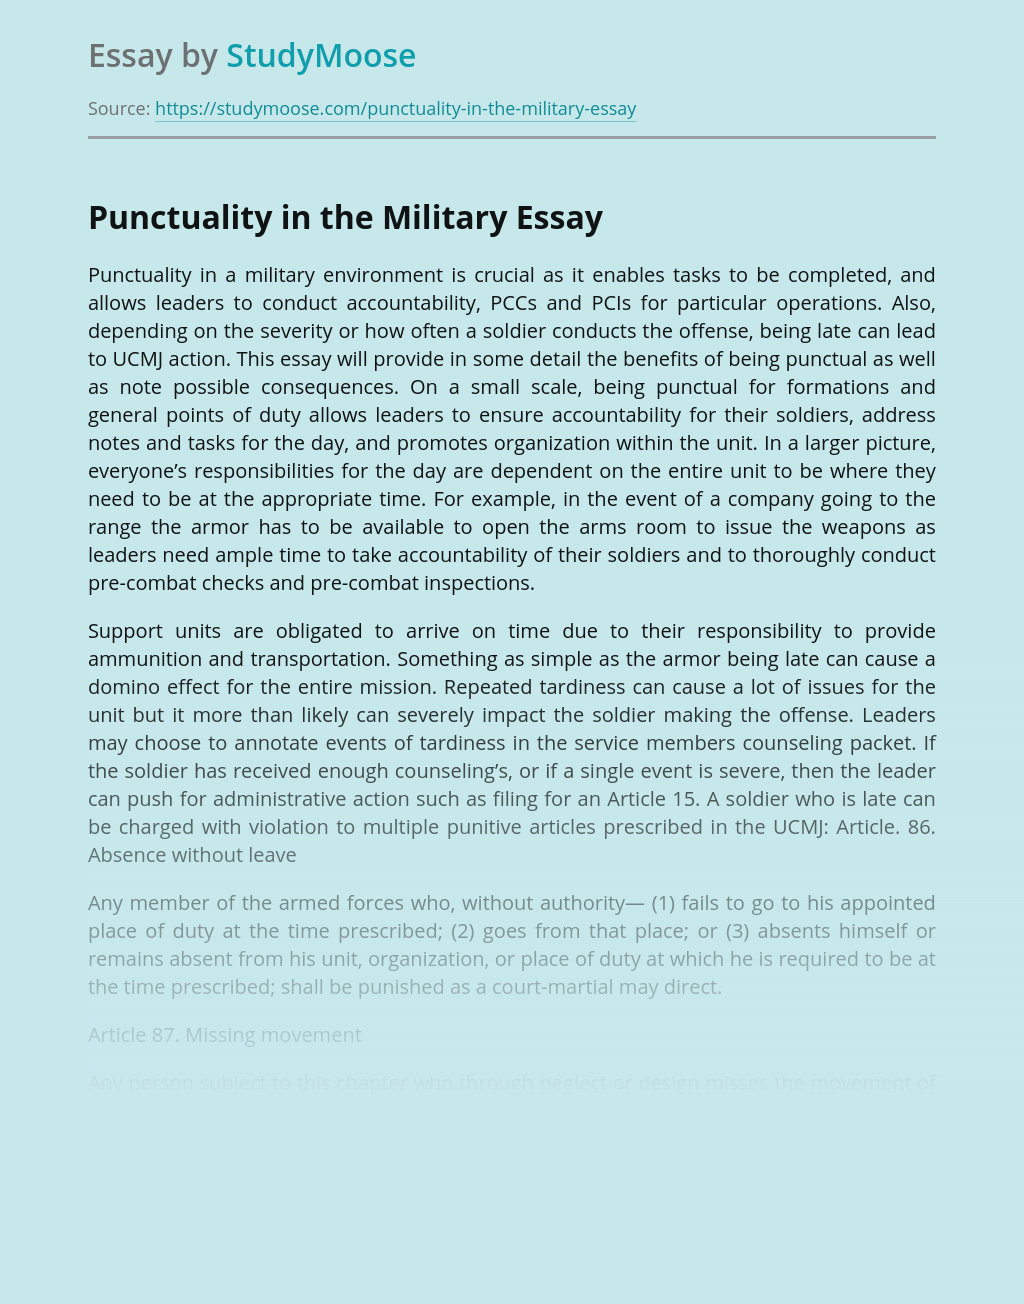 Punctuality in the Military